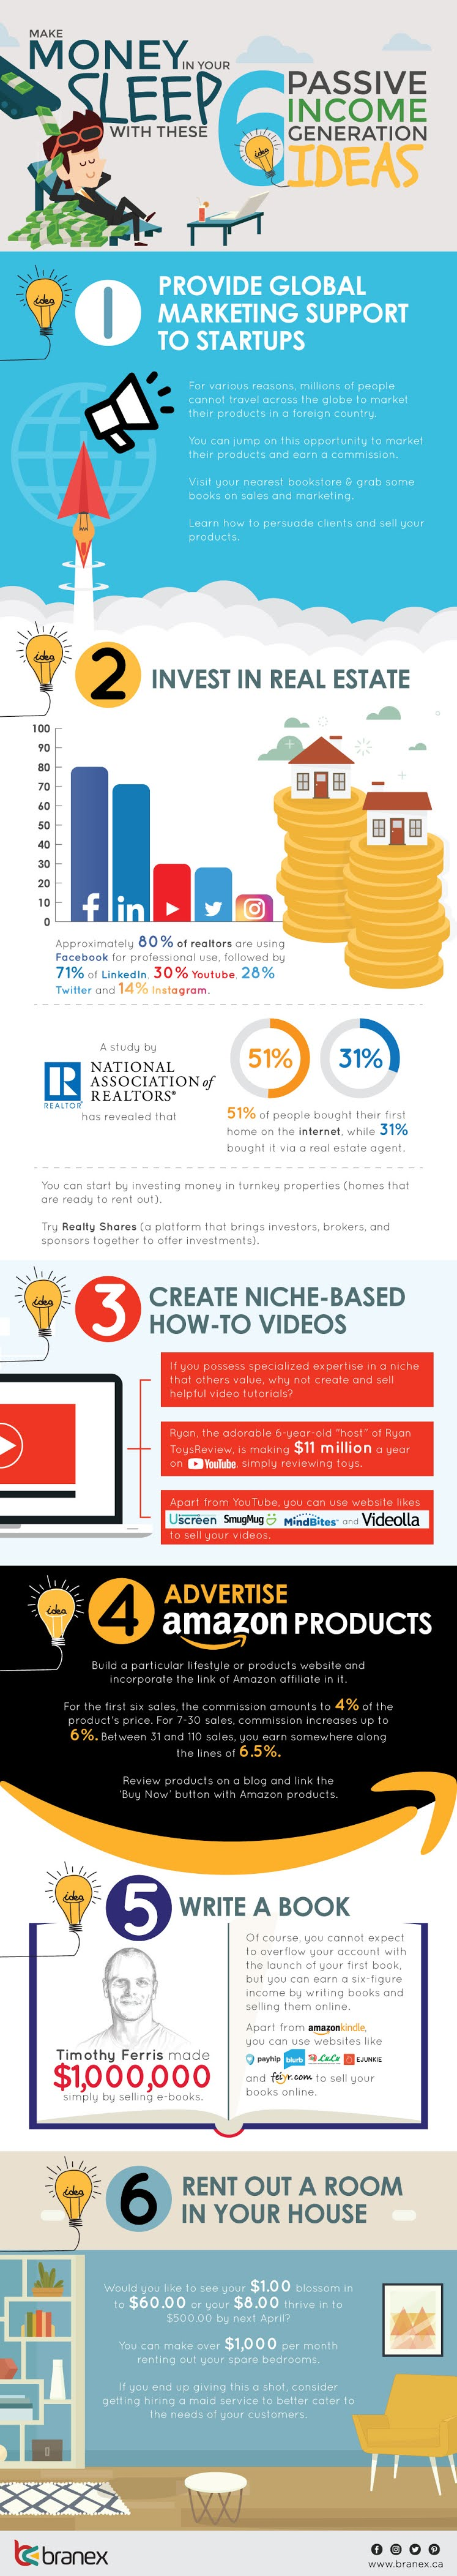 Make Money In Your Sleep With These Passive Income Generation #infographic #Money #Make Money #Income Generation #How to Make Money